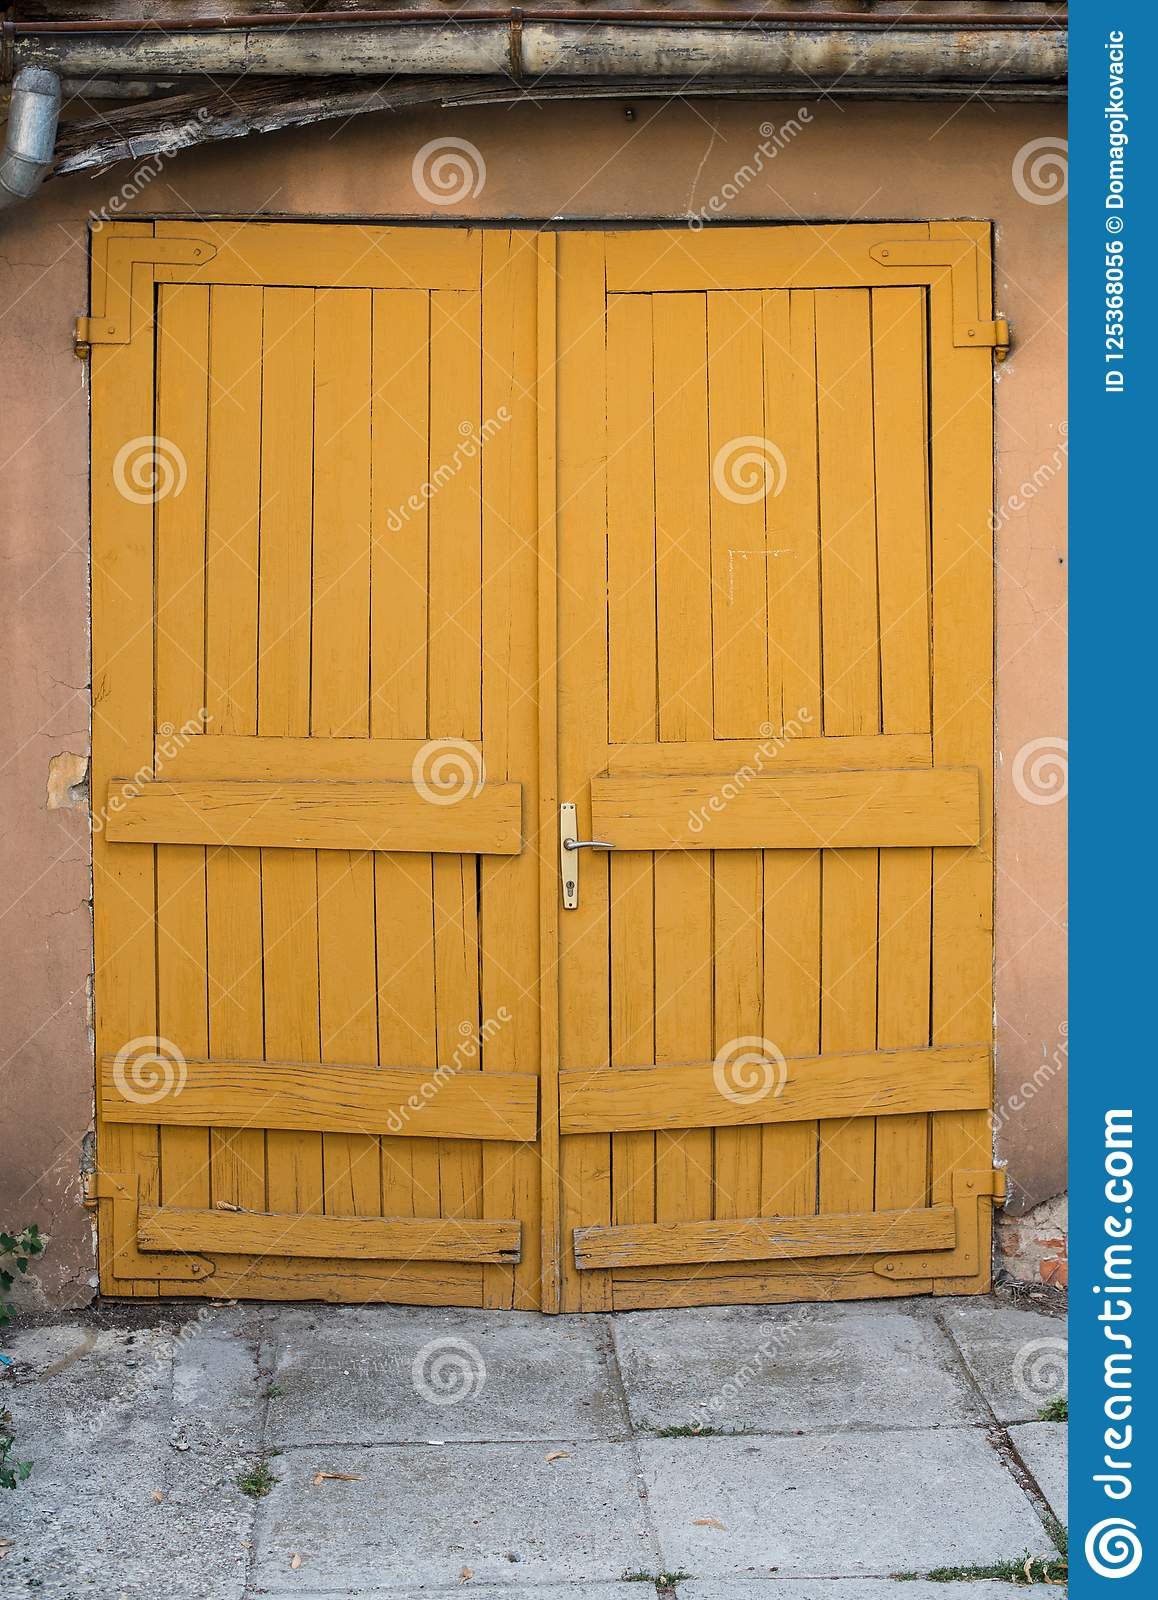 Old Closed Wooden Yellow Garage Doors Stock Photo Image Of Home